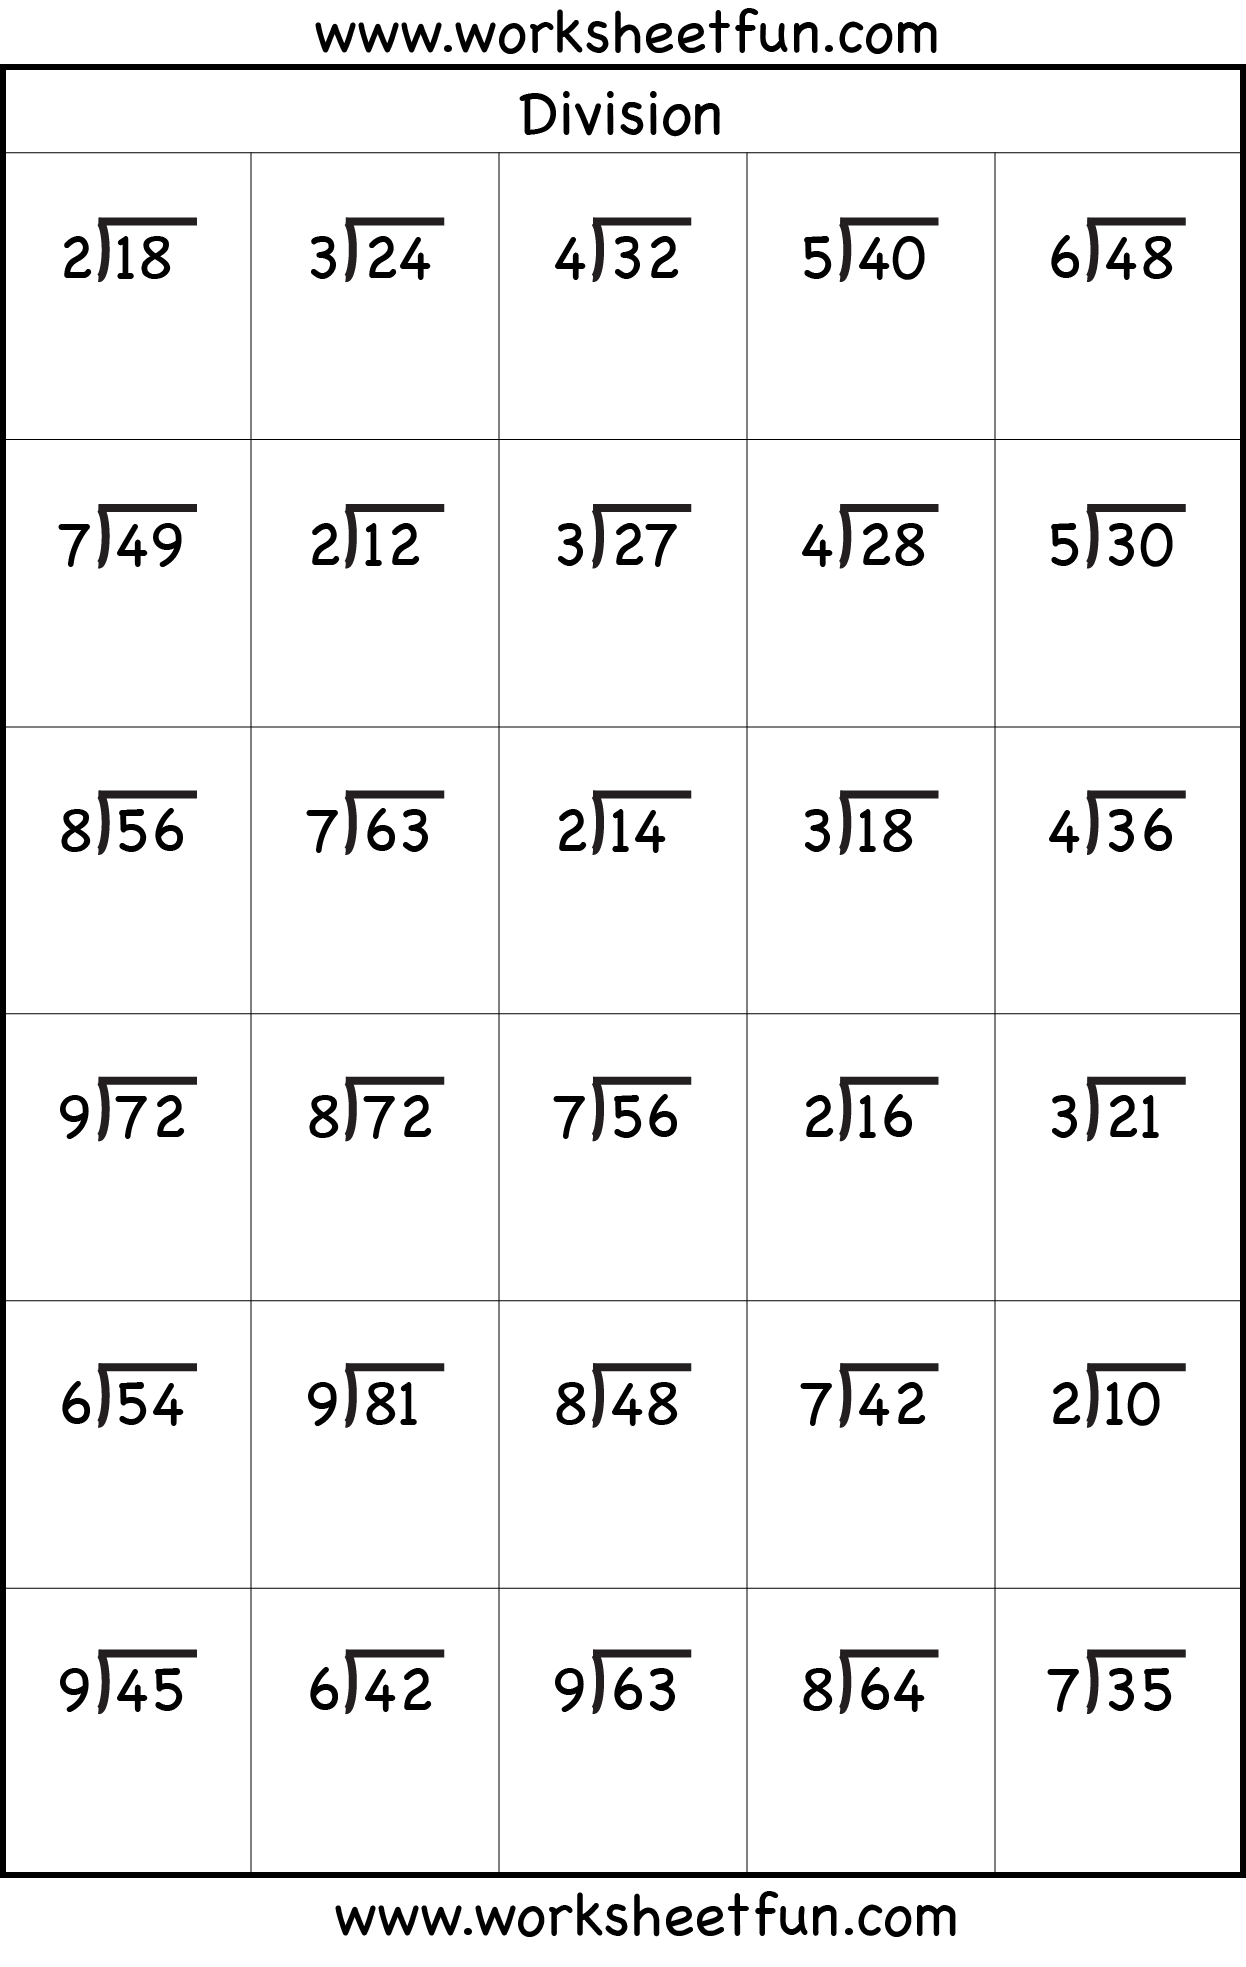 hight resolution of Pin By Dip$ On Divit   Math Division Worksheets